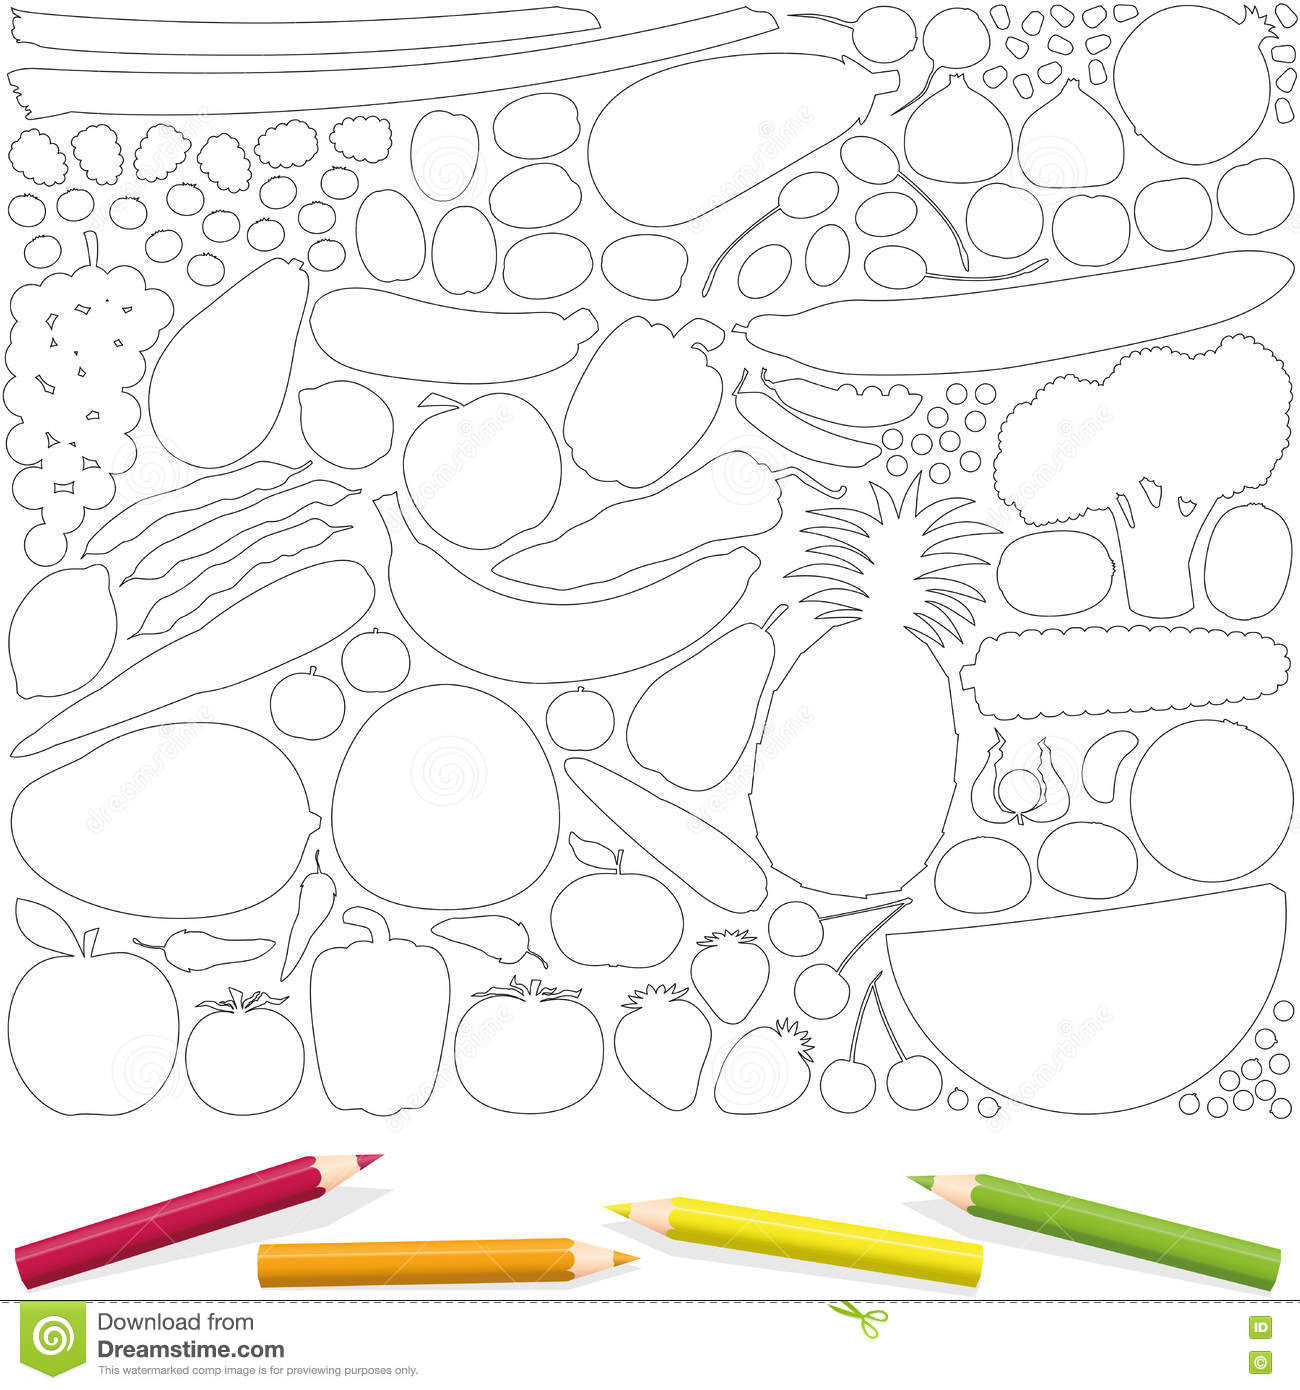 Fruits Vegetables Coloring Page Picture Template Stock Vector ...